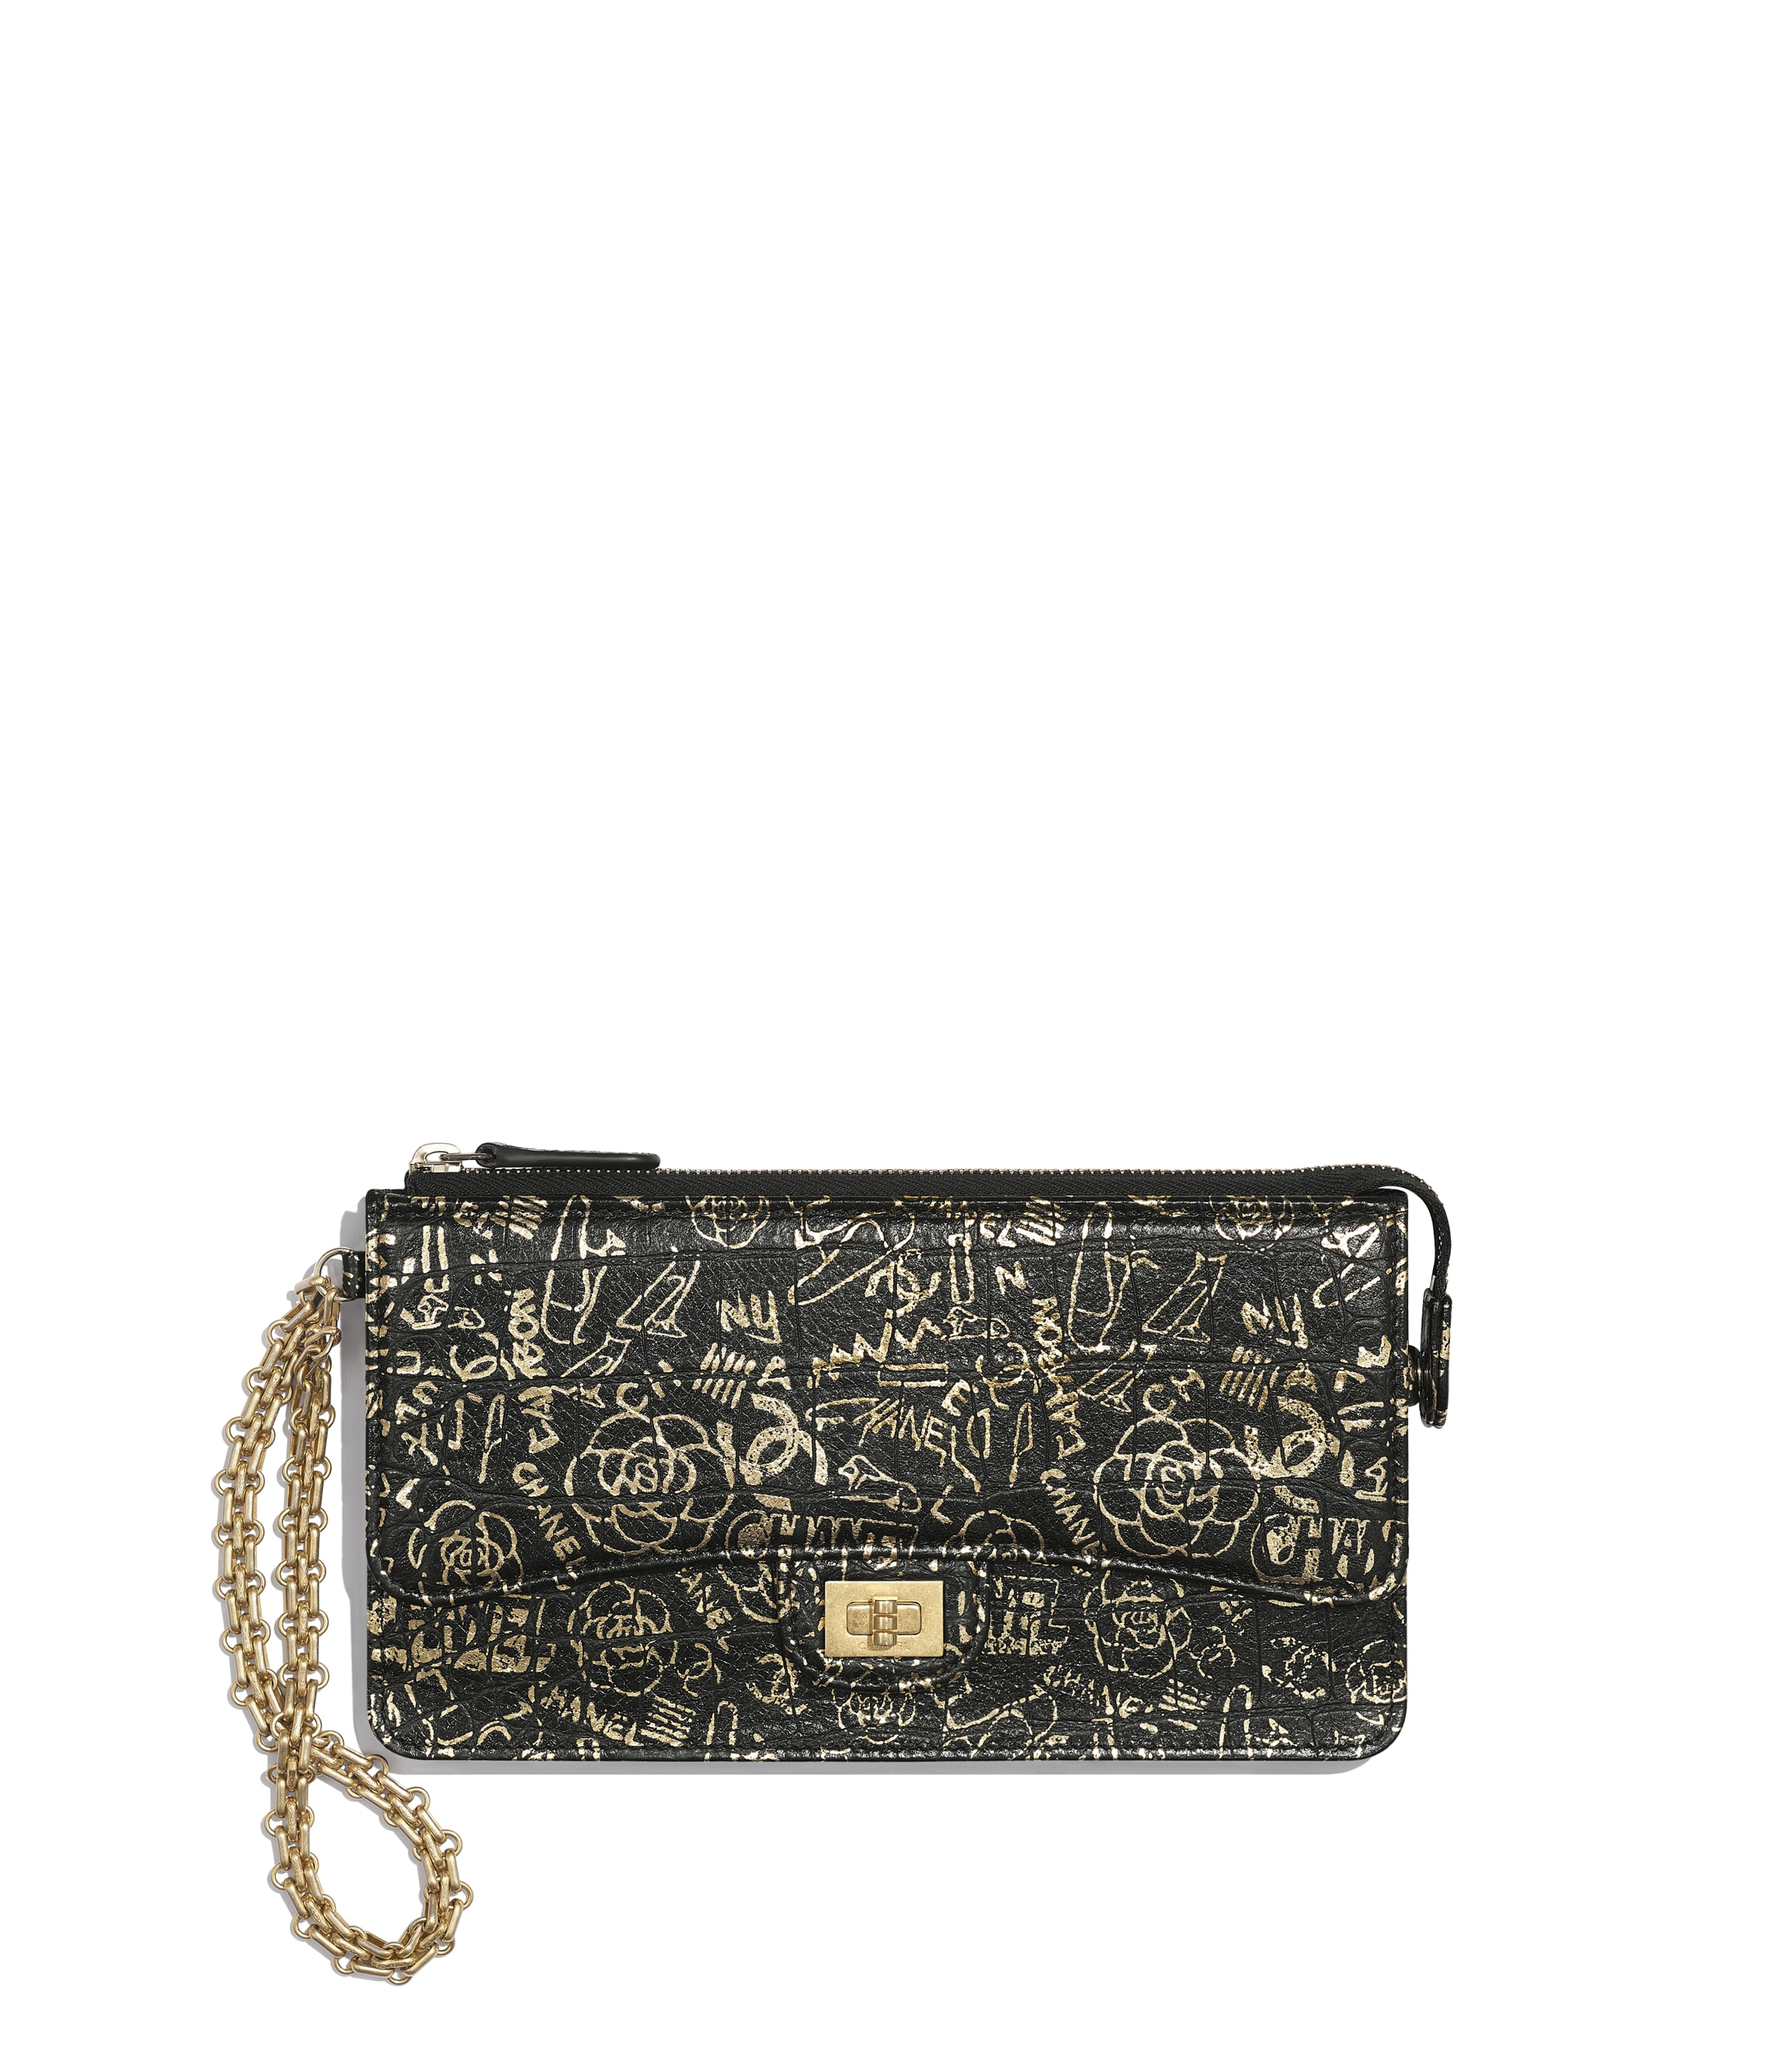 b811045a3700 2.55 Pouch With Handle, crocodile embossed printed leather & gold ...